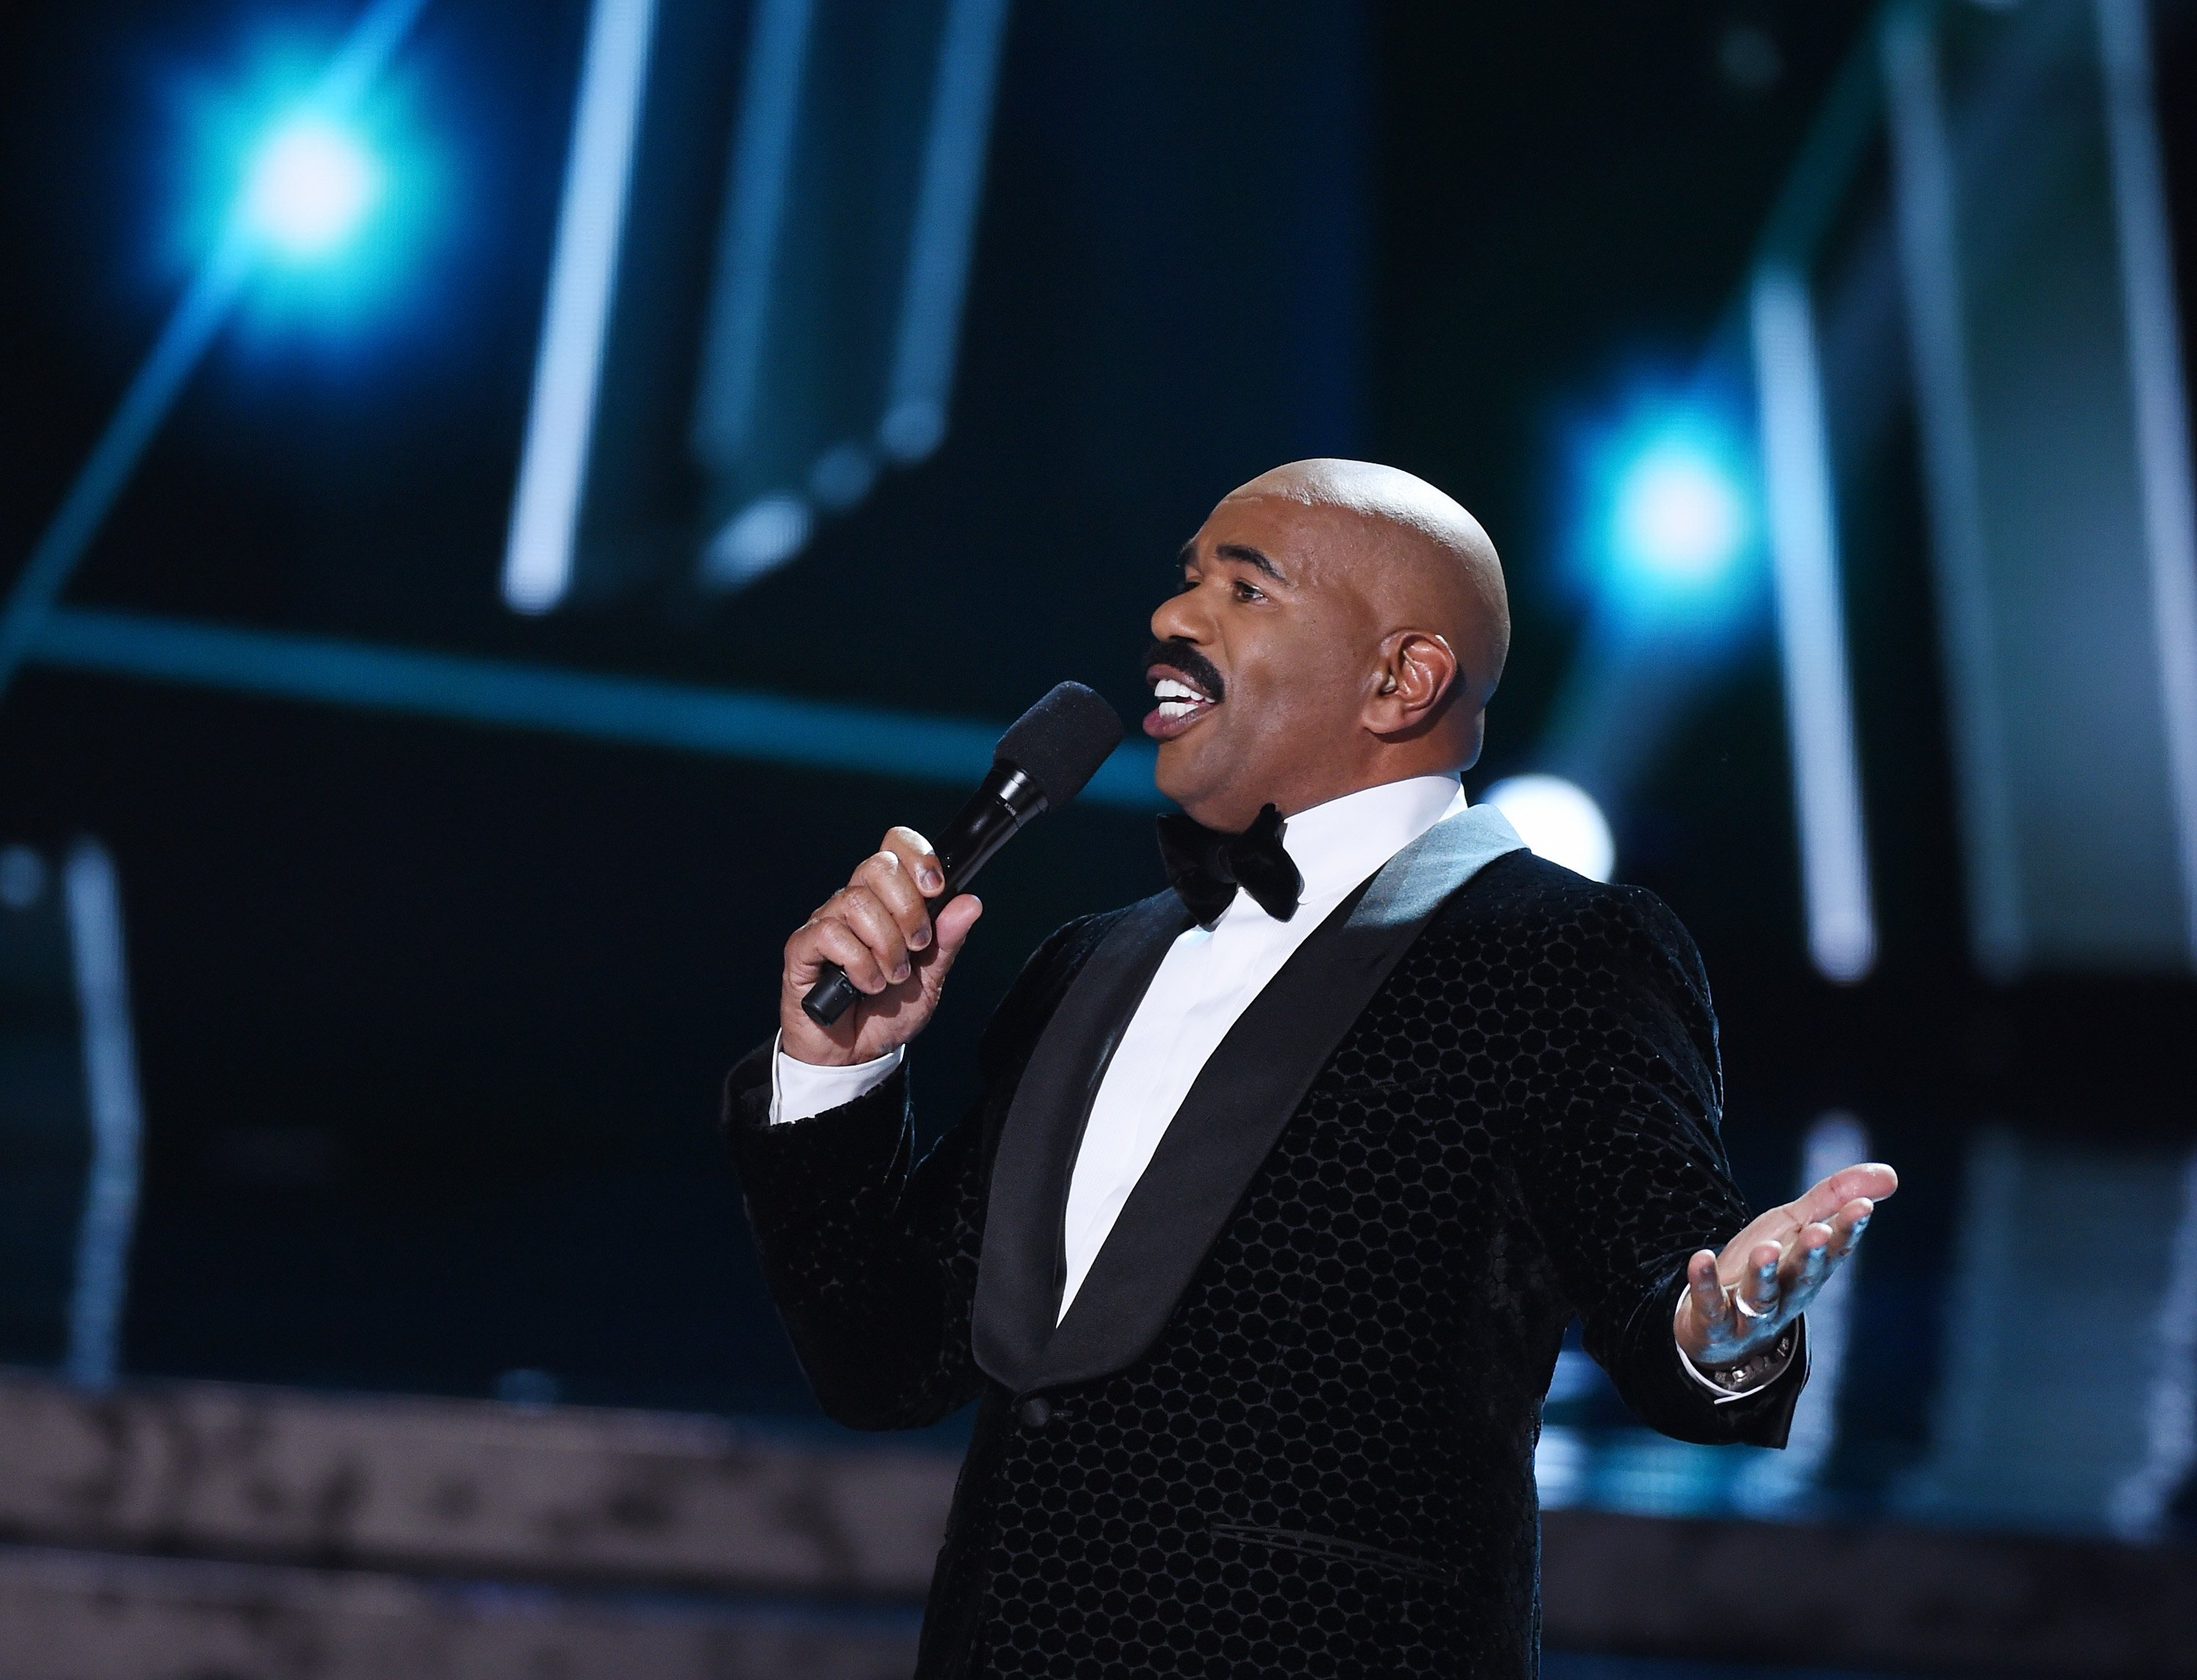 Steve Harvey hosts the 2015 Miss Universe Pageant on December 20, 2015 in Las Vegas, Nevada. | Photo: GettyImages/Global Images of Ukraine